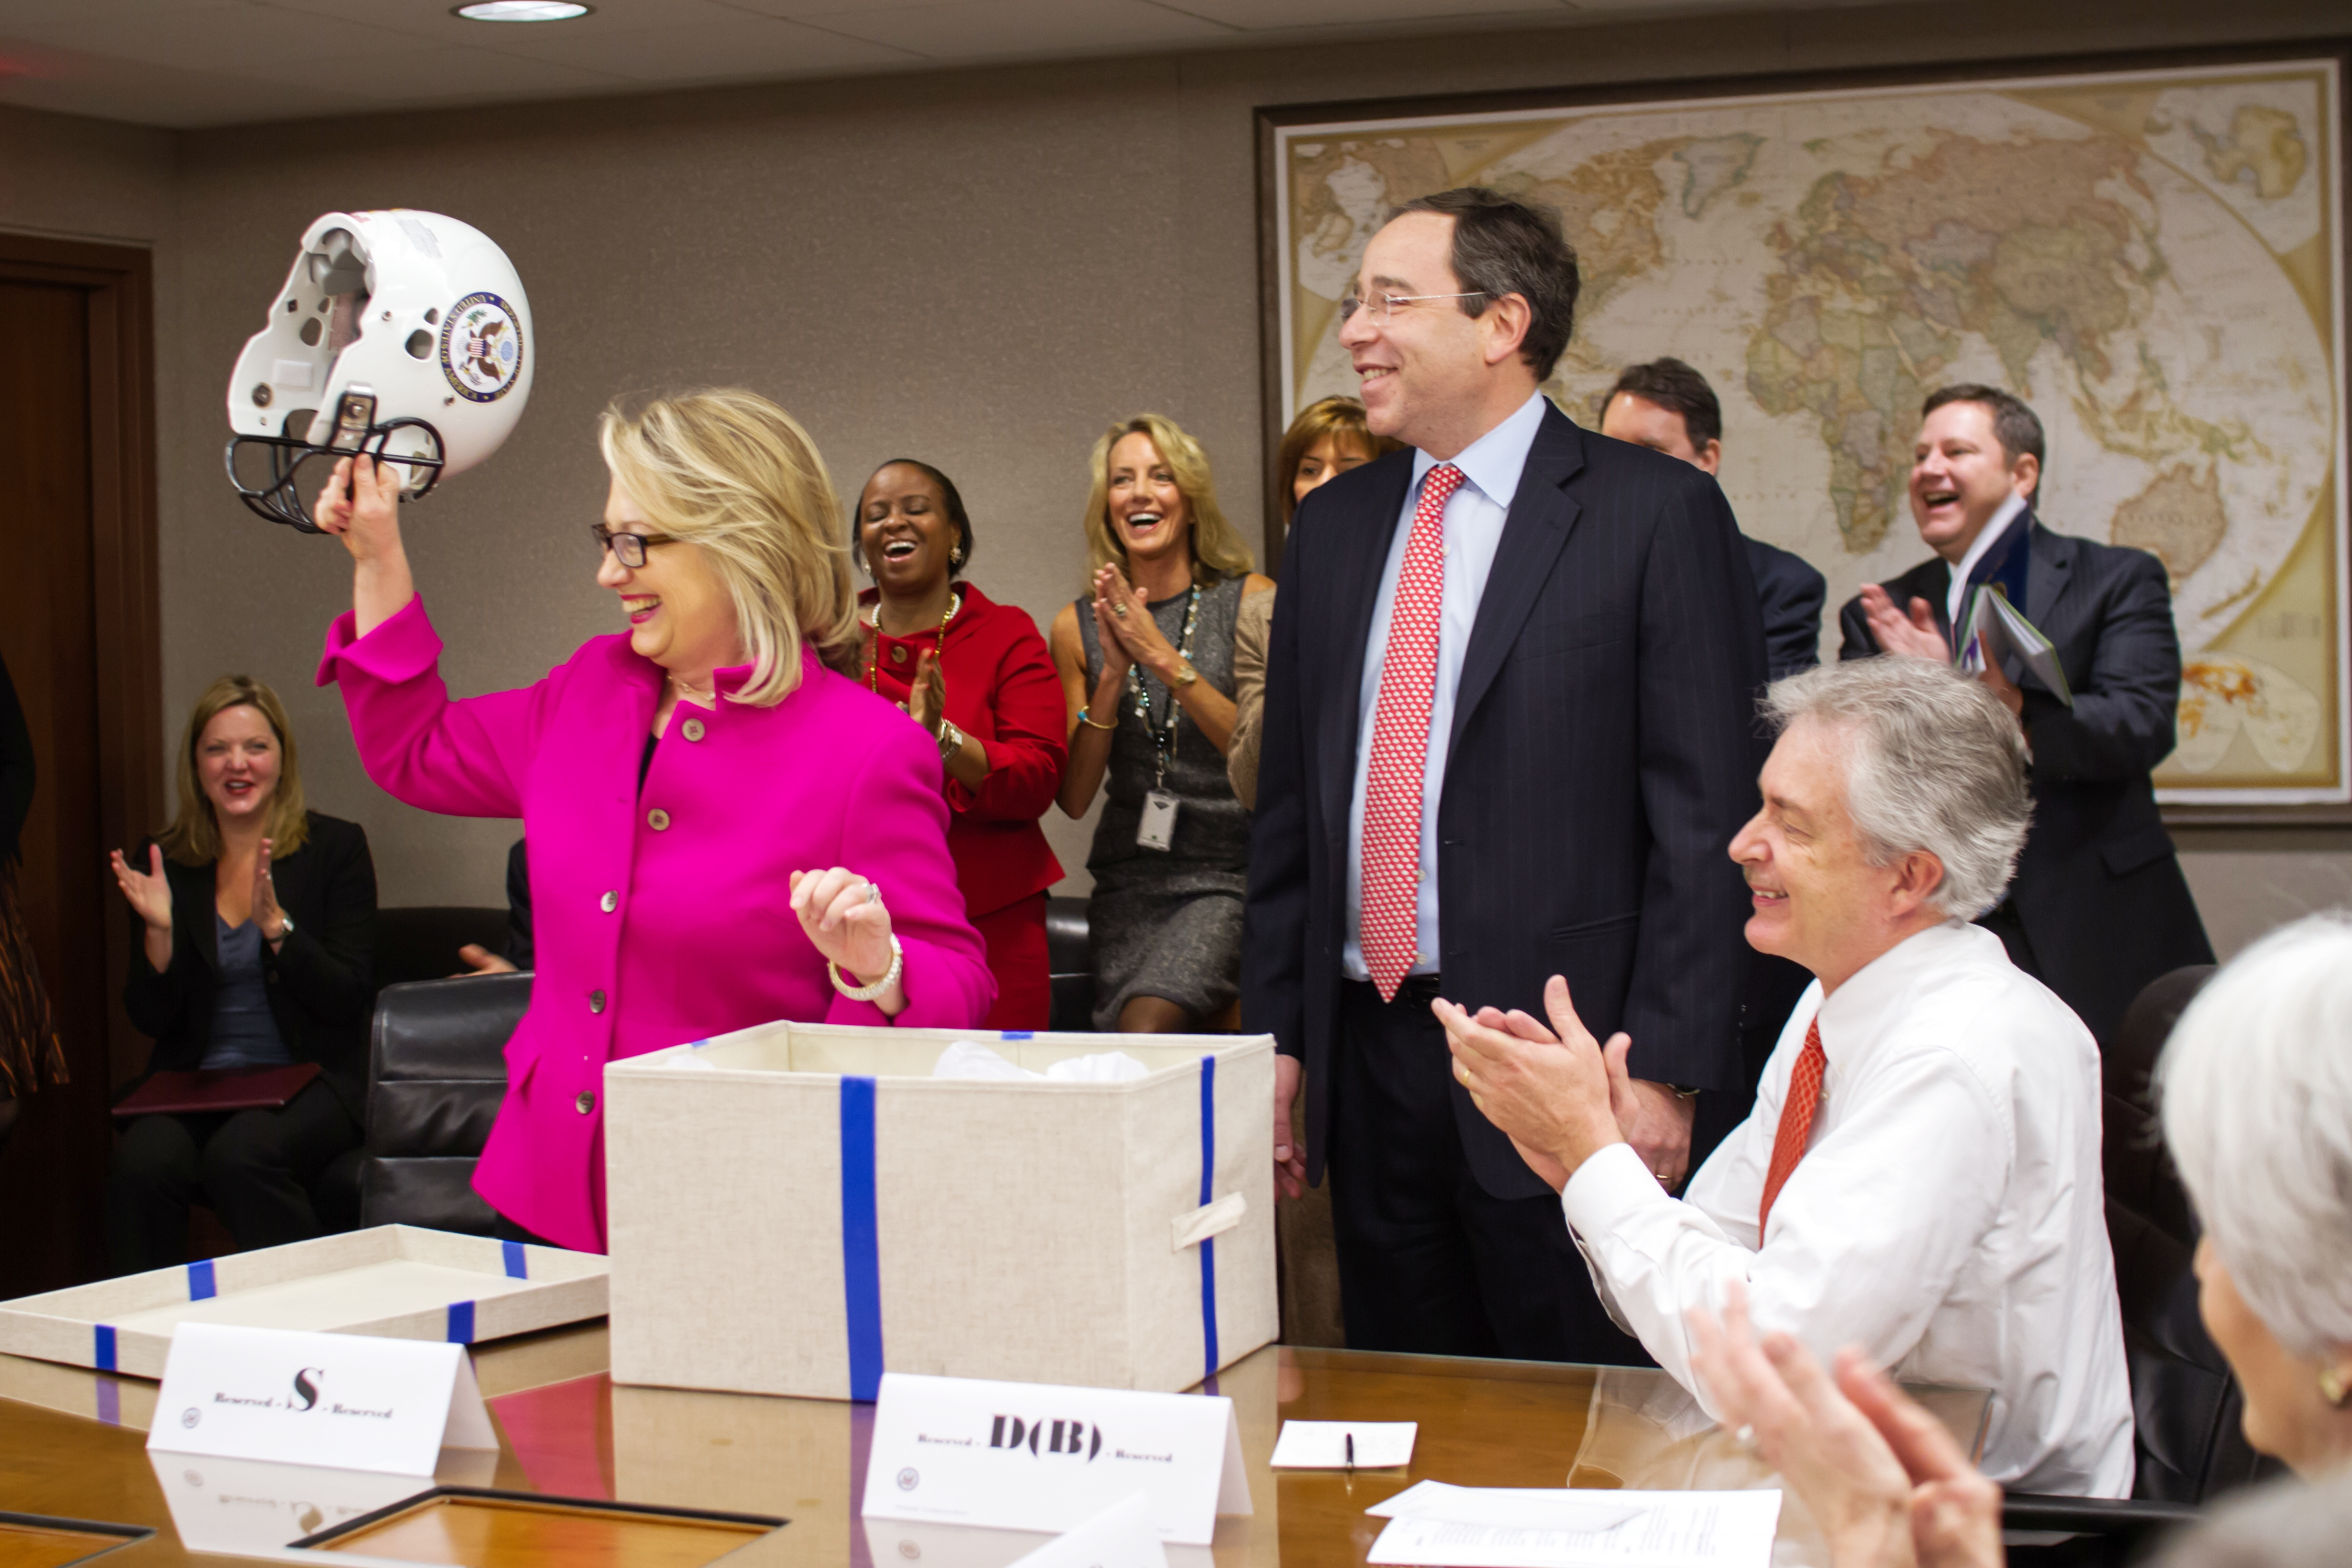 Hillary clintons tenure as secretary of state wikipedia secretary clinton is welcomed back to work at the state department on january 7 2013 aljukfo Choice Image